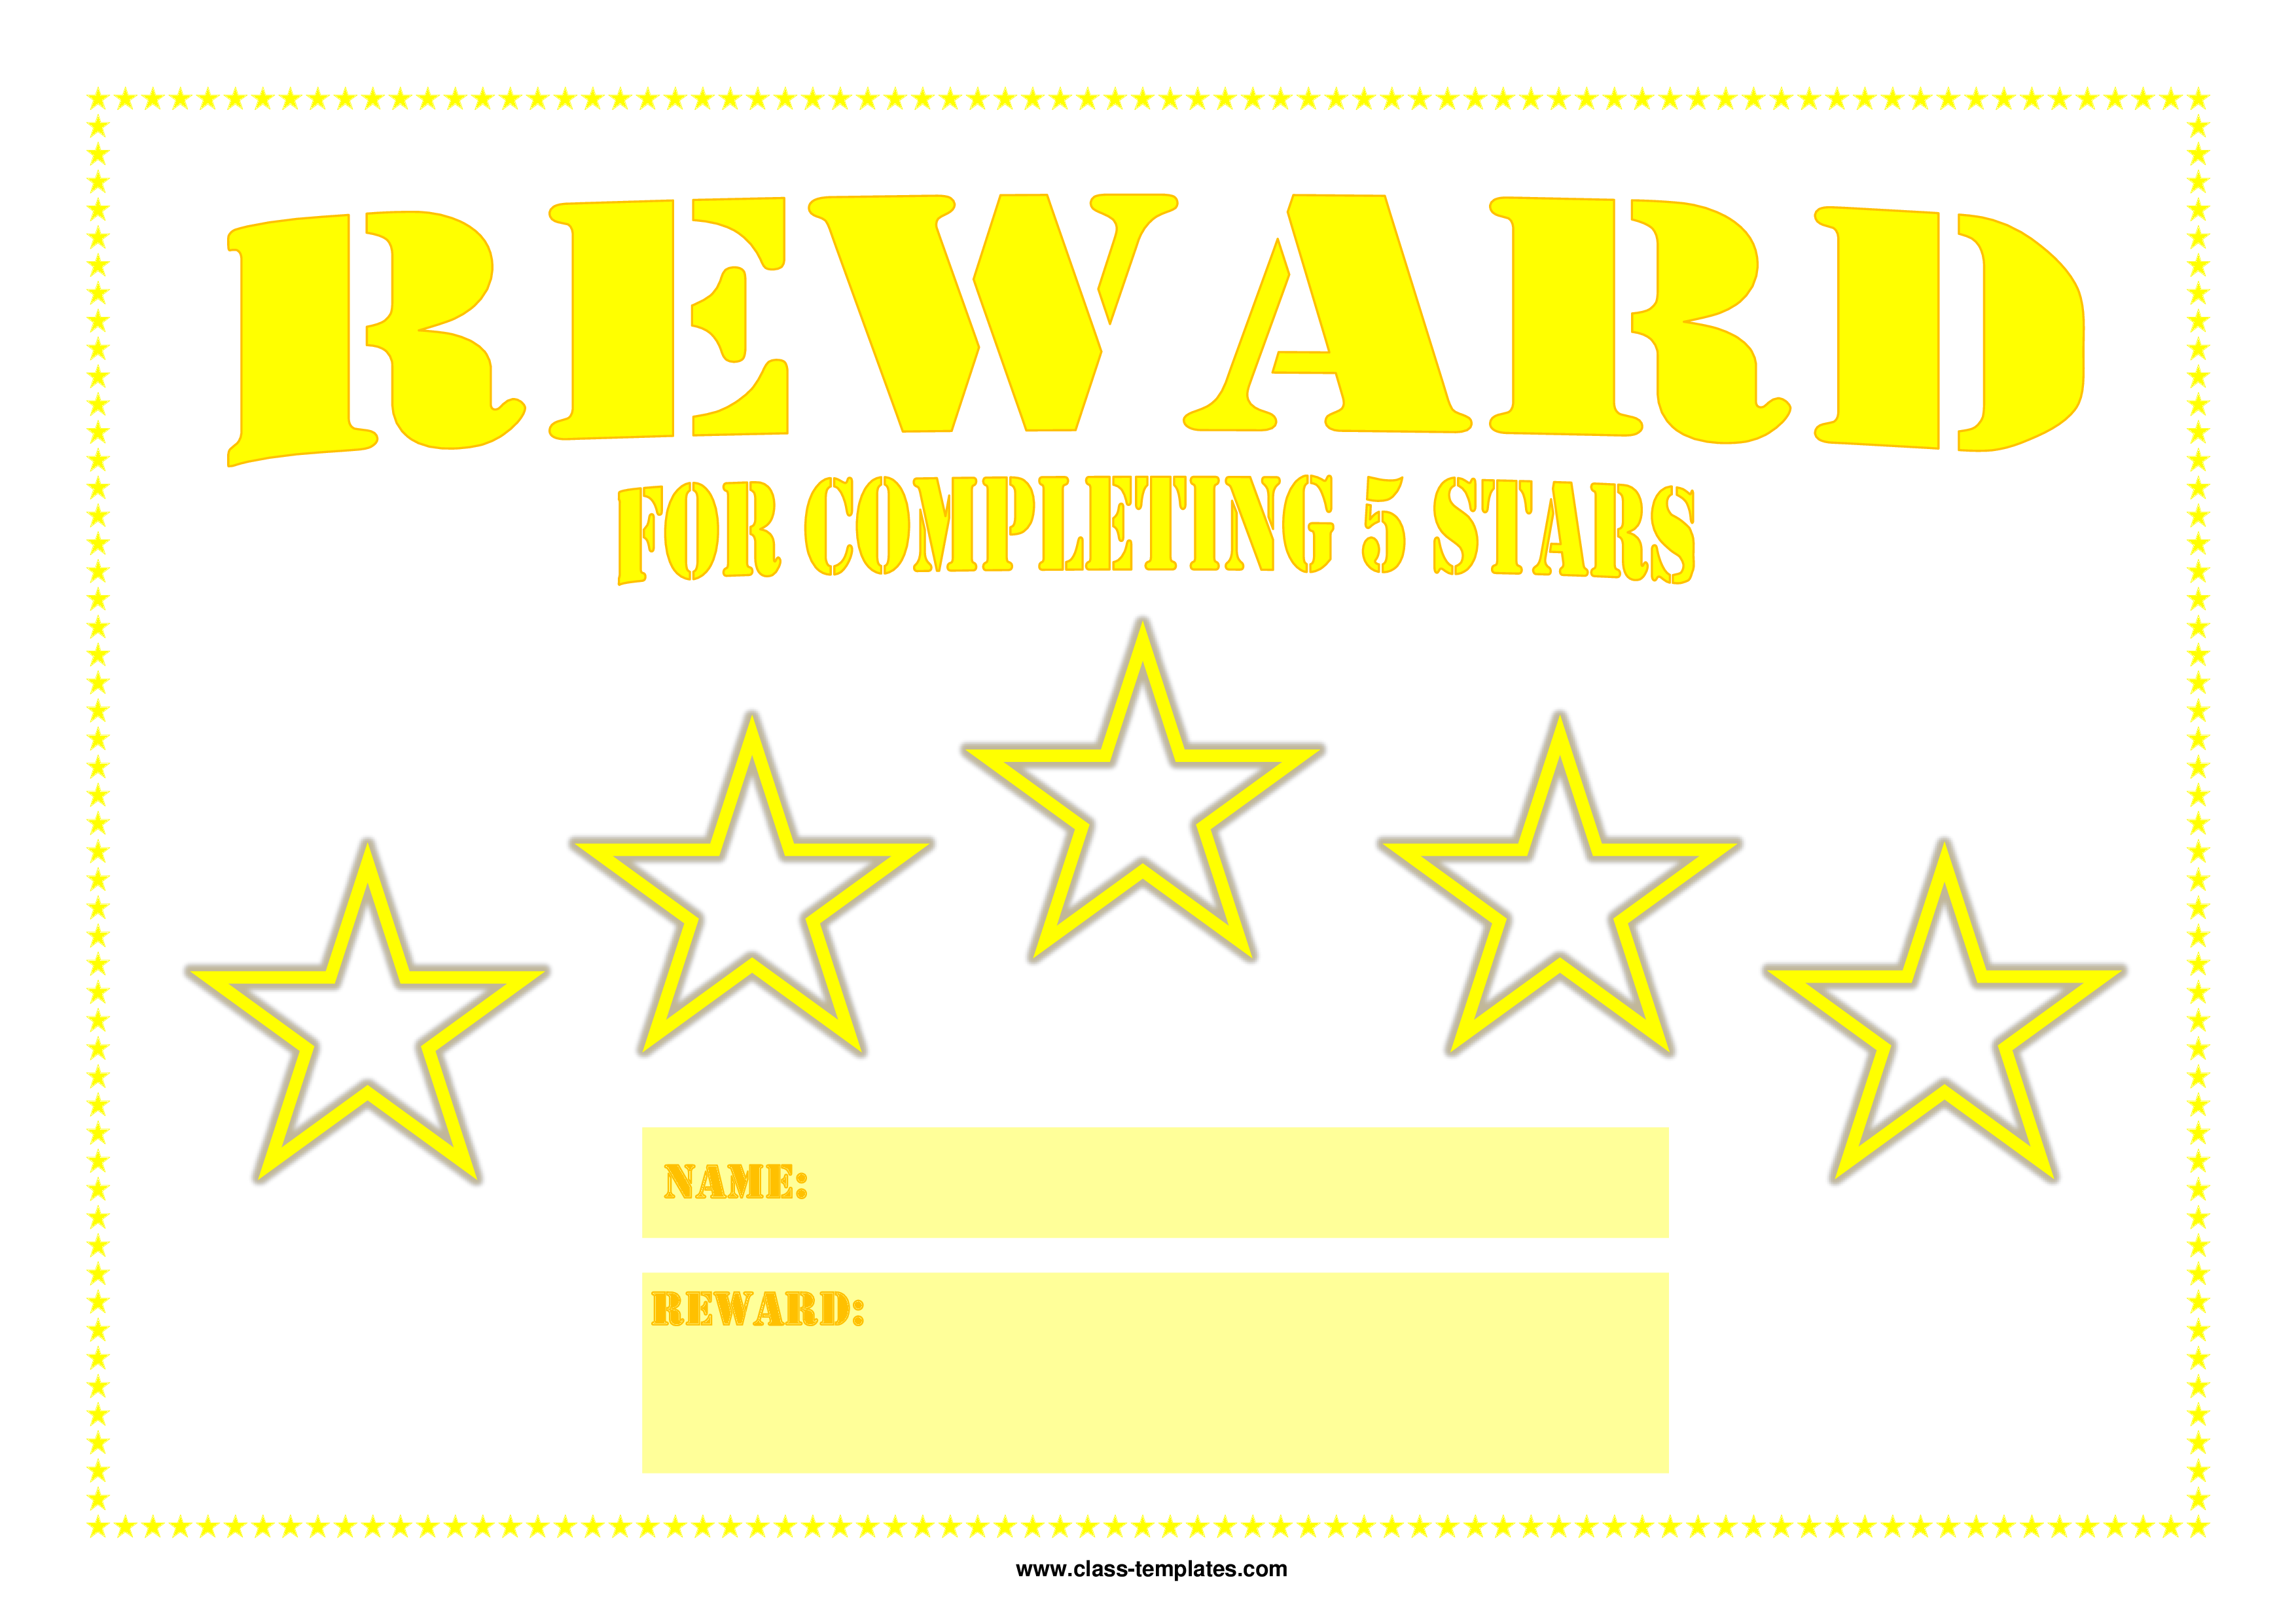 5 Star Printable Reward Certificate Main Image Download Template  Name A Star Certificate Template